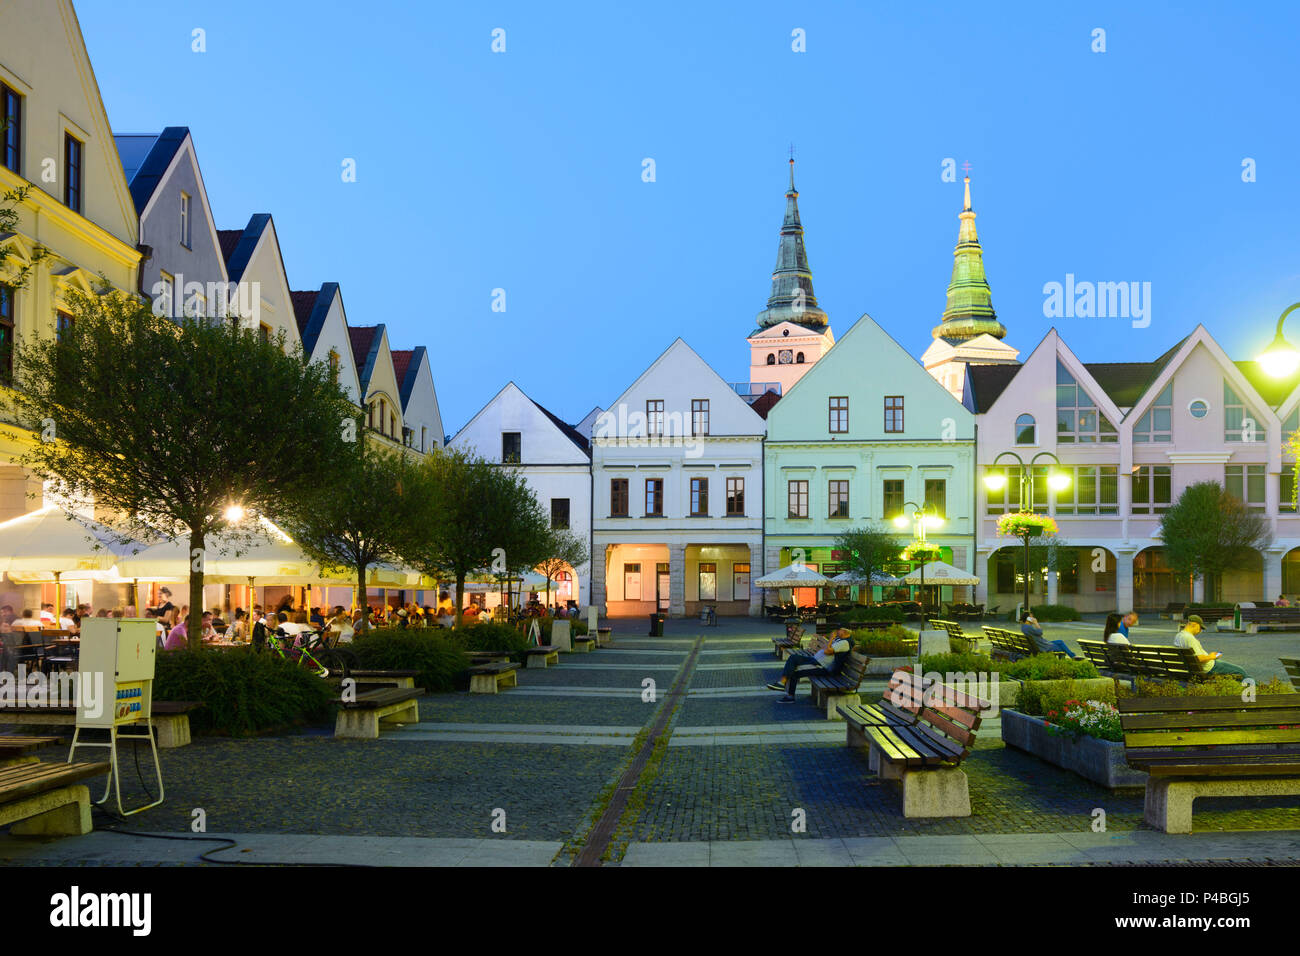 Zilina (Sillein, Silein), main square Marianske namestie with burgher houses, restaurant, Slovakia - Stock Image